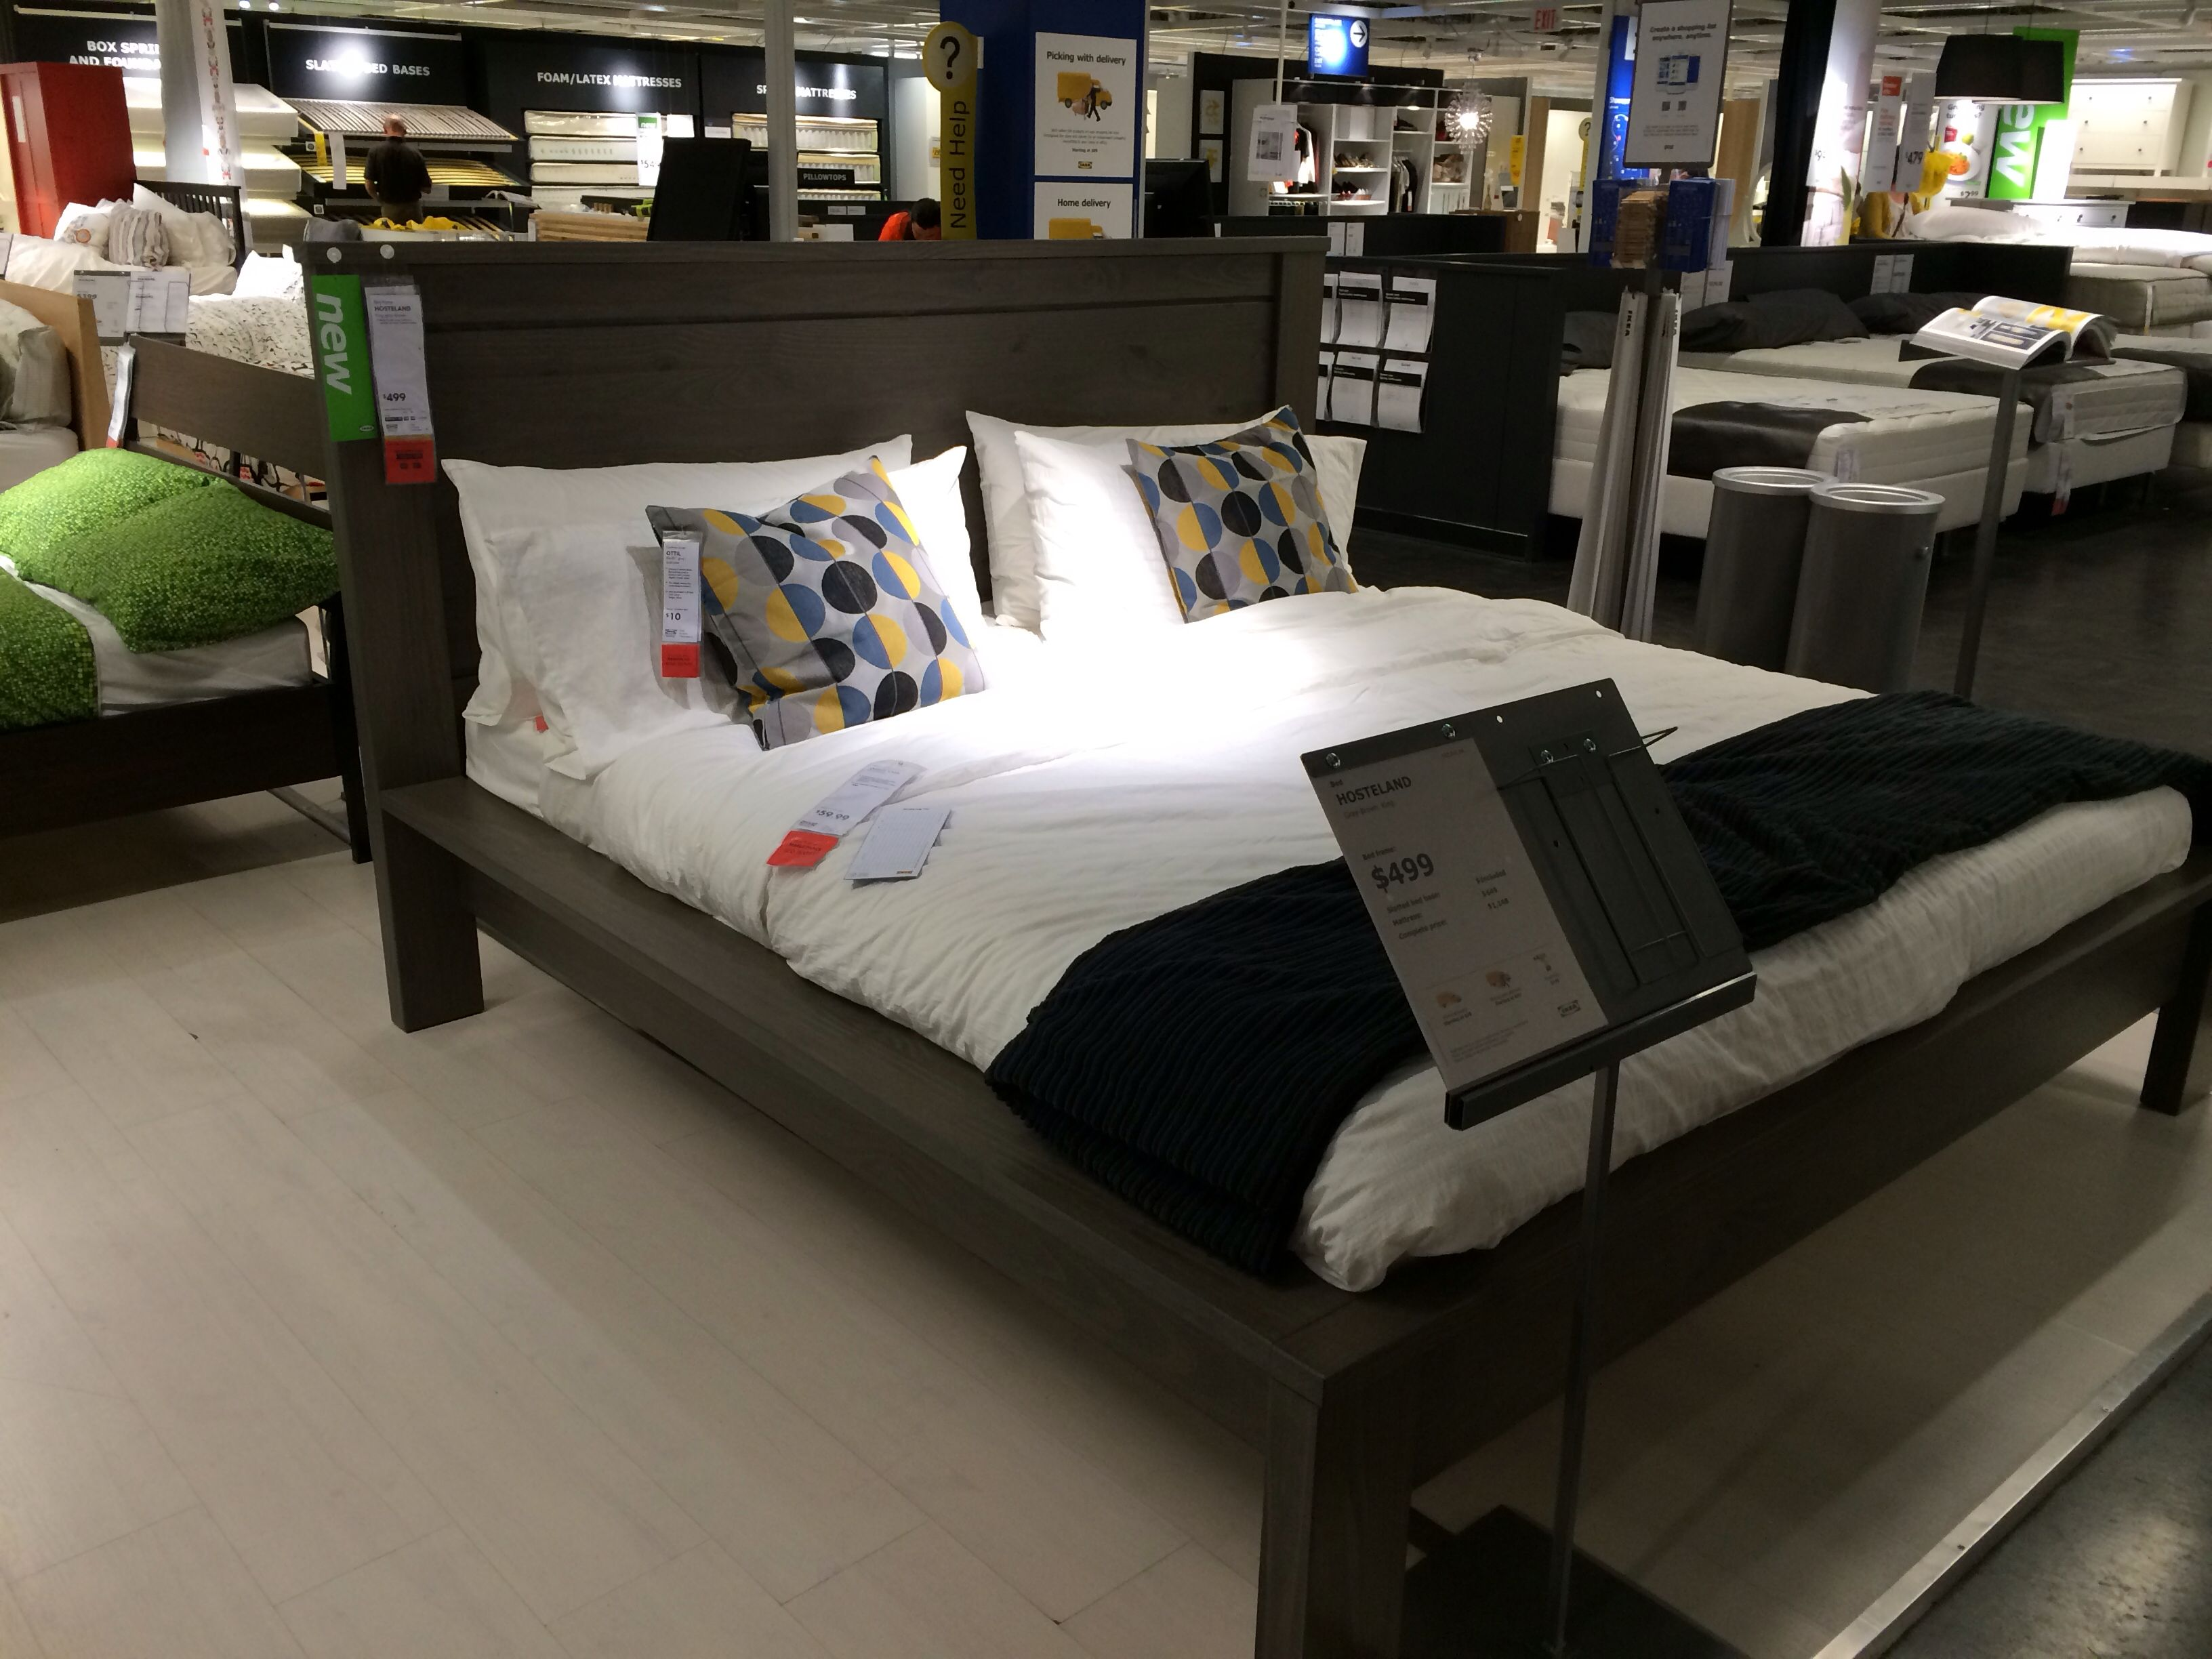 Boho Chic Bedroom IKEA Hosteland King Sized Bed In Gray Brown